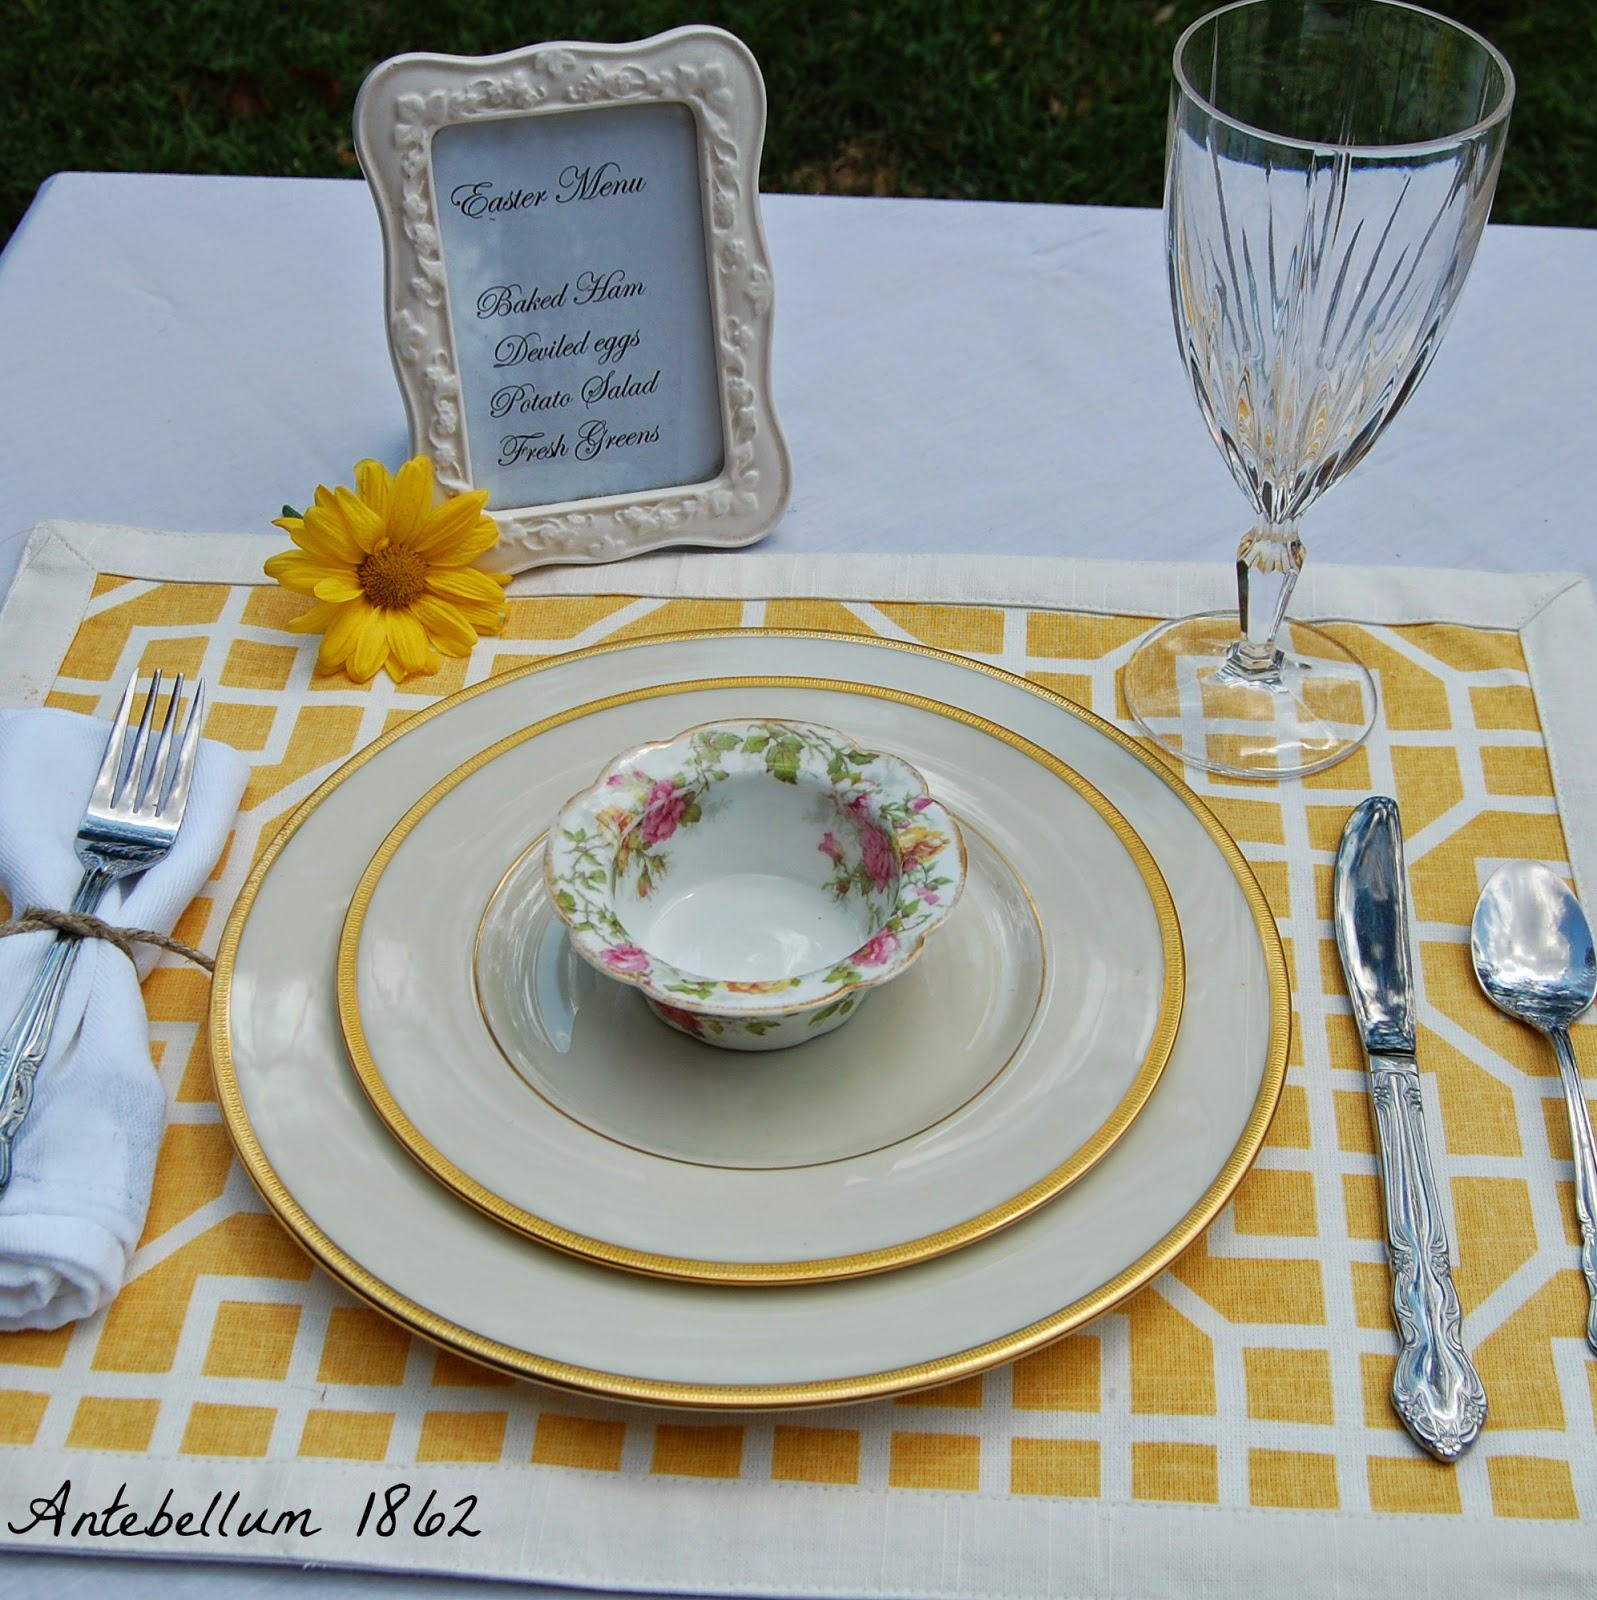 Antebellum 1862 How To Create Simple Table Settings For